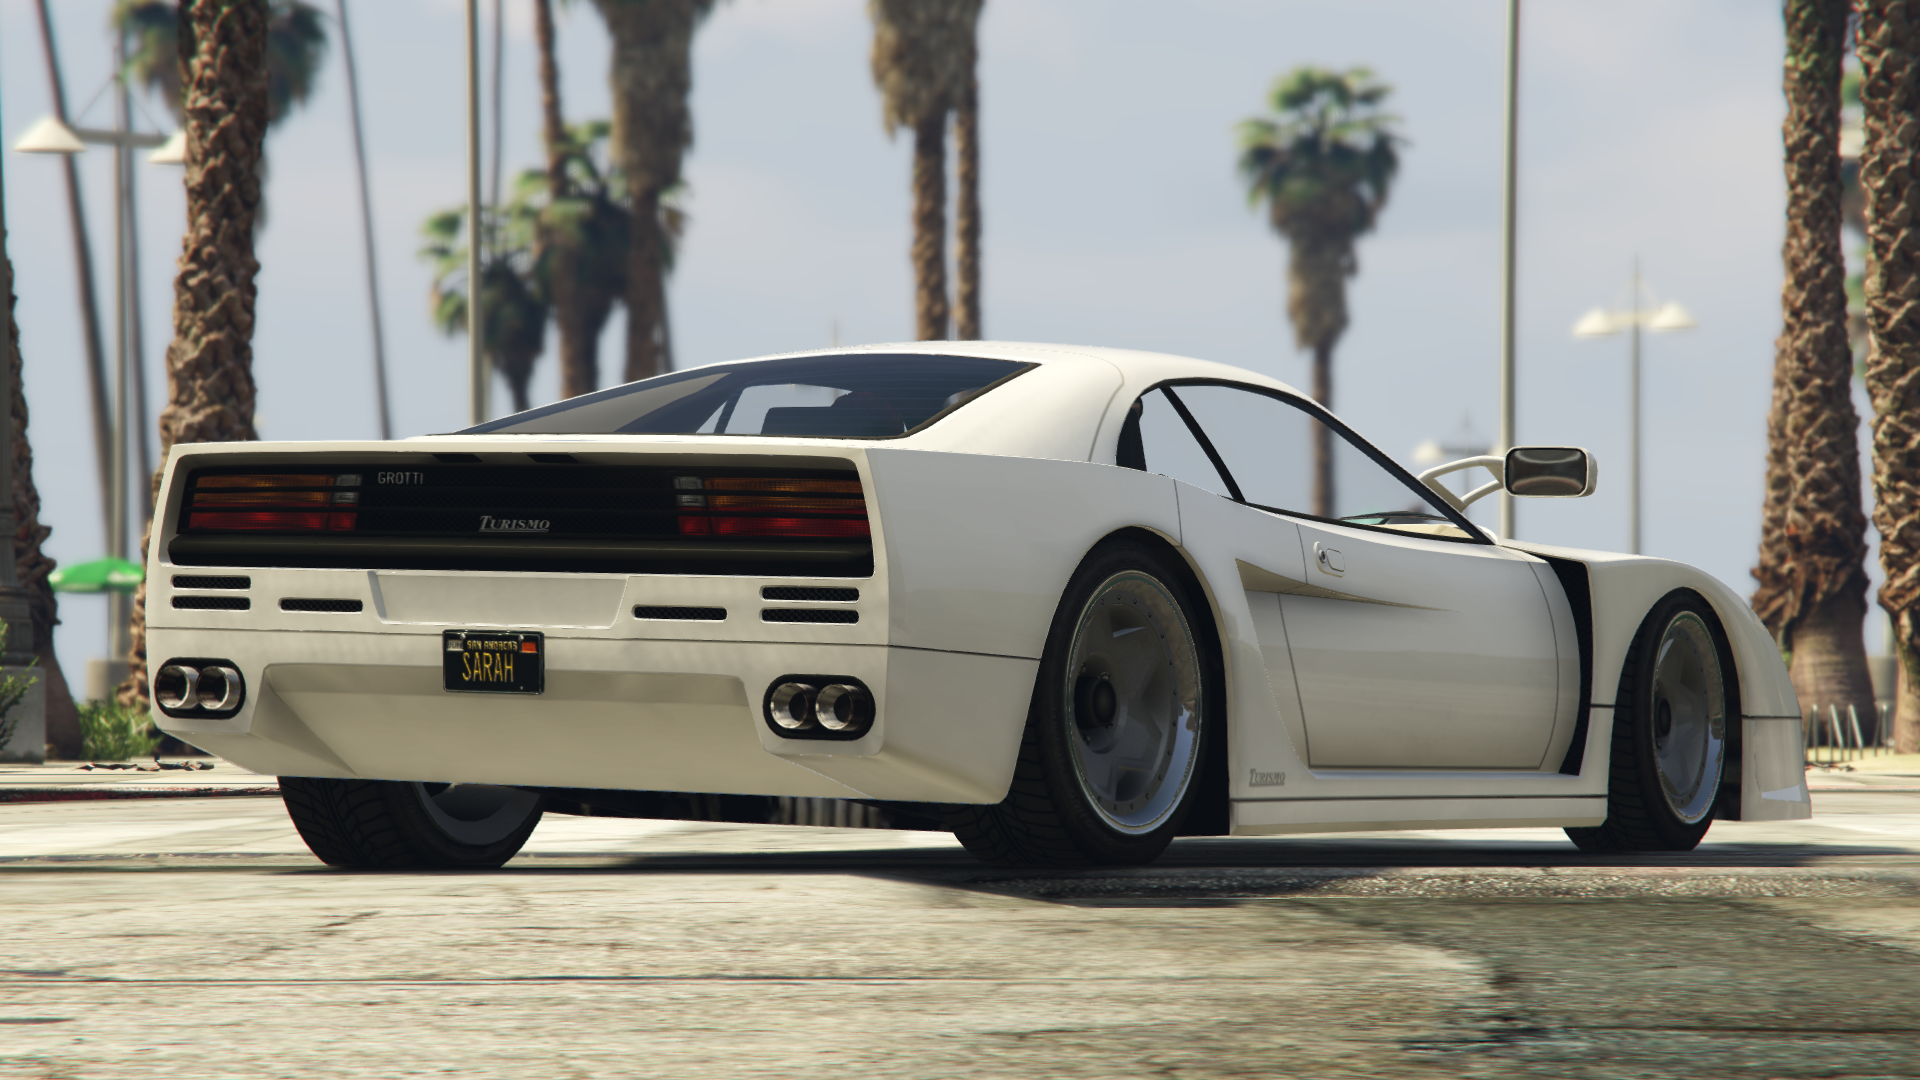 GTA V Screenshots (Official)   - Page 6 33019148133_8070a08f13_o